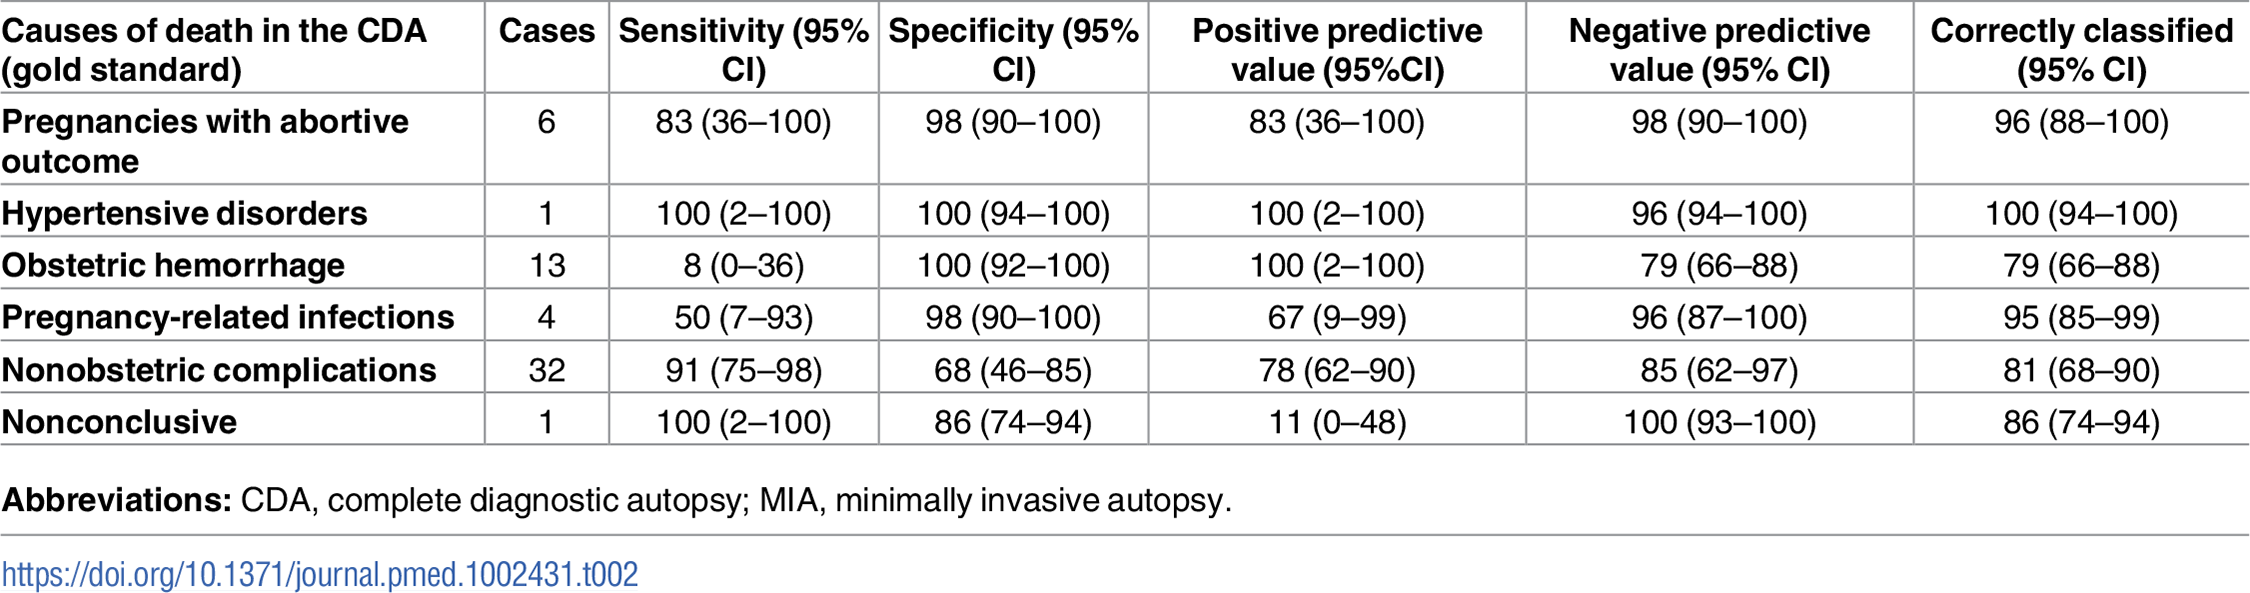 Sensitivity, specificity, positive and negative predictive value, and accuracy of the MIA for the different diagnostic categories in maternal deaths.